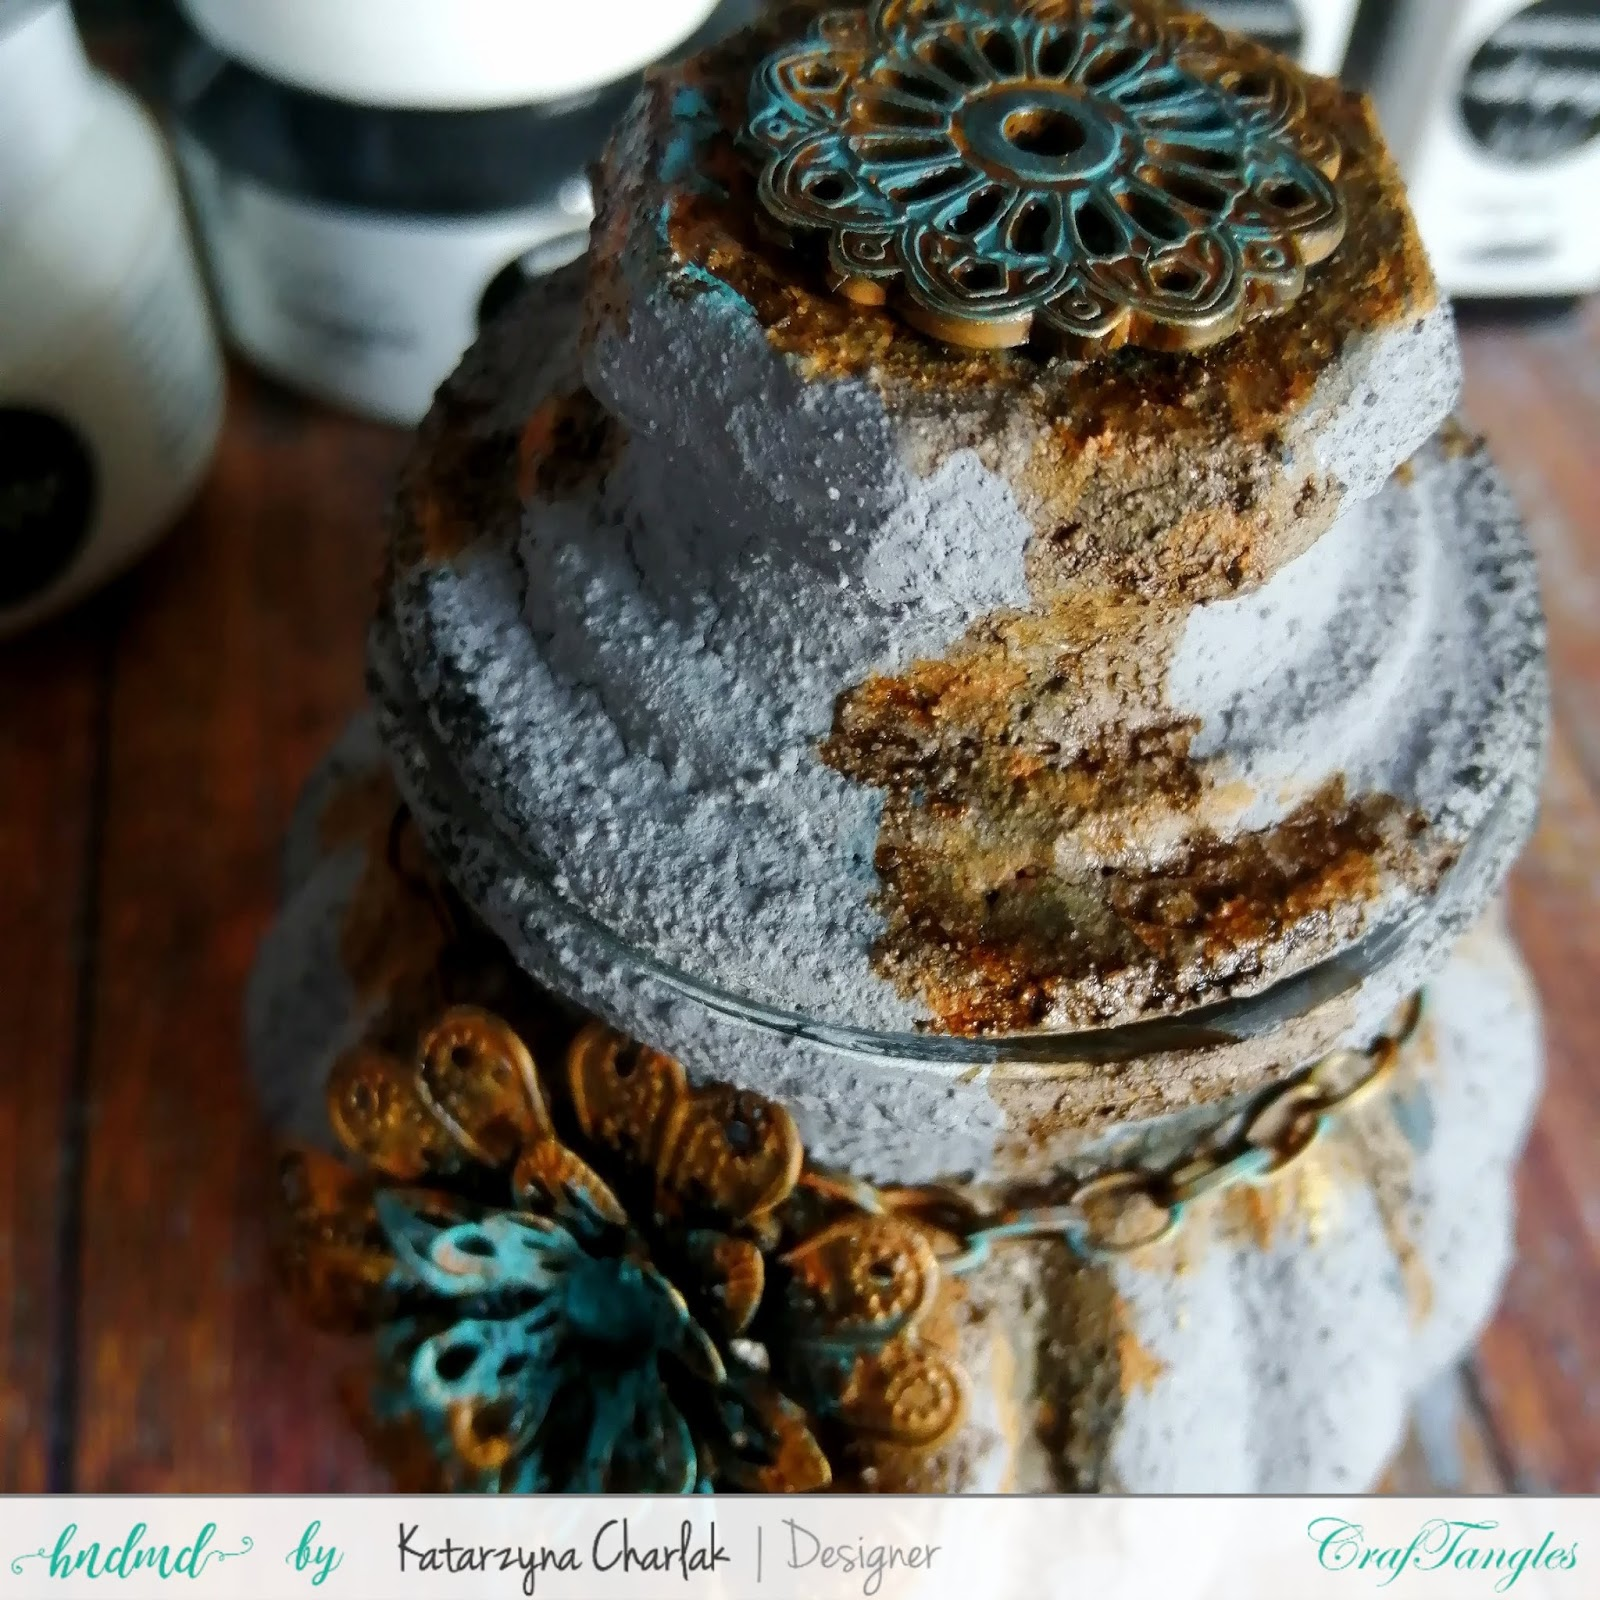 Glass jar with a stone effect by Katarzyna Charlak 4